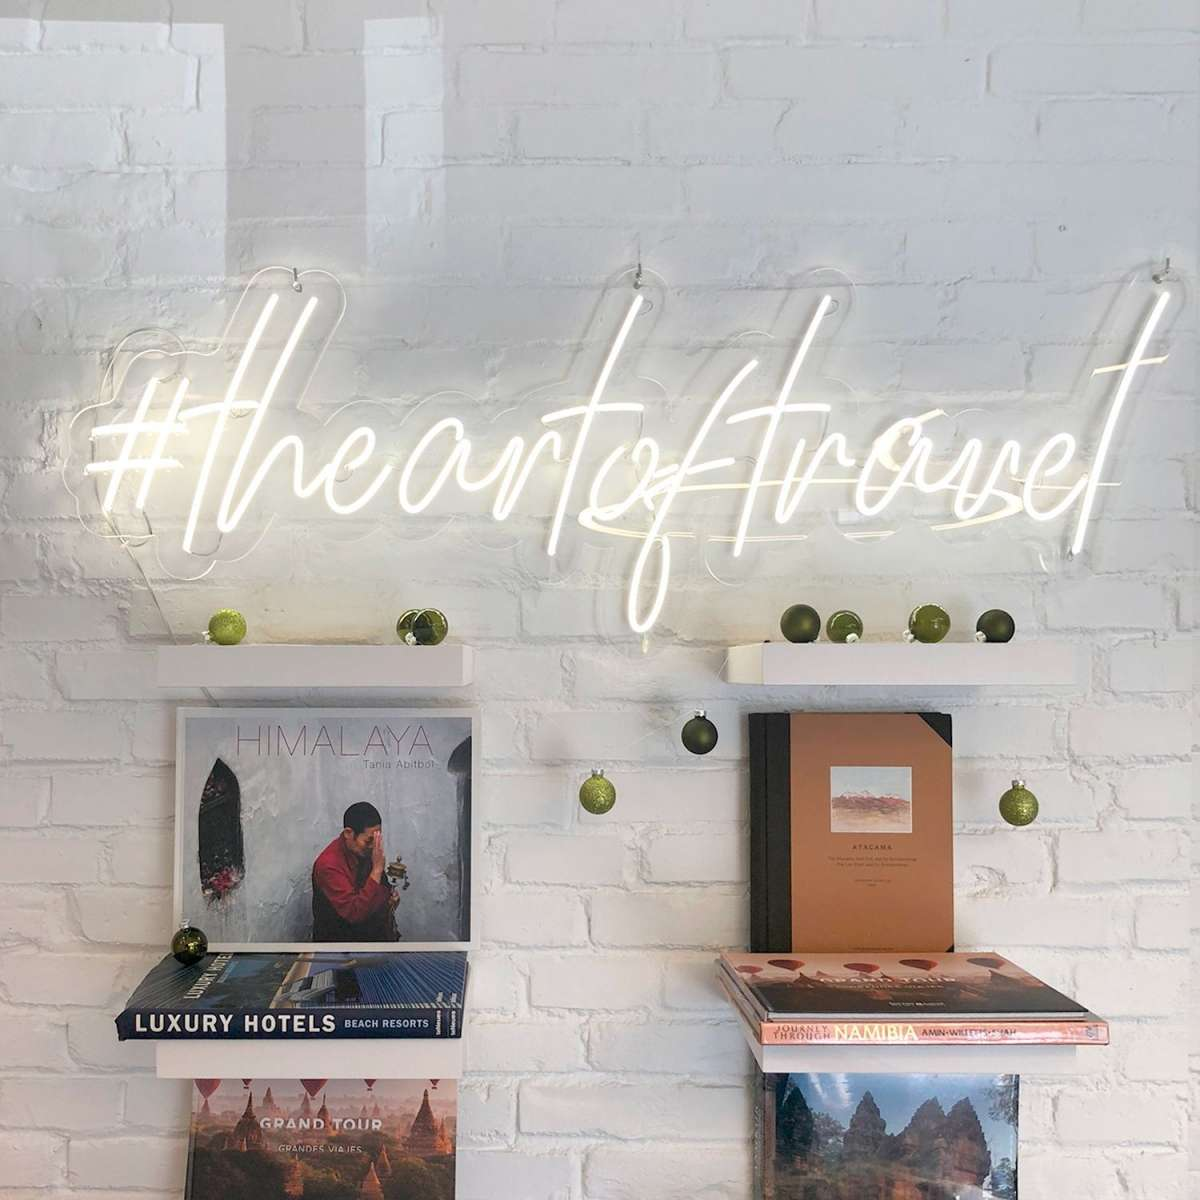 Neones personalizados para venta – The Art of Travel – Leloup Barcelona